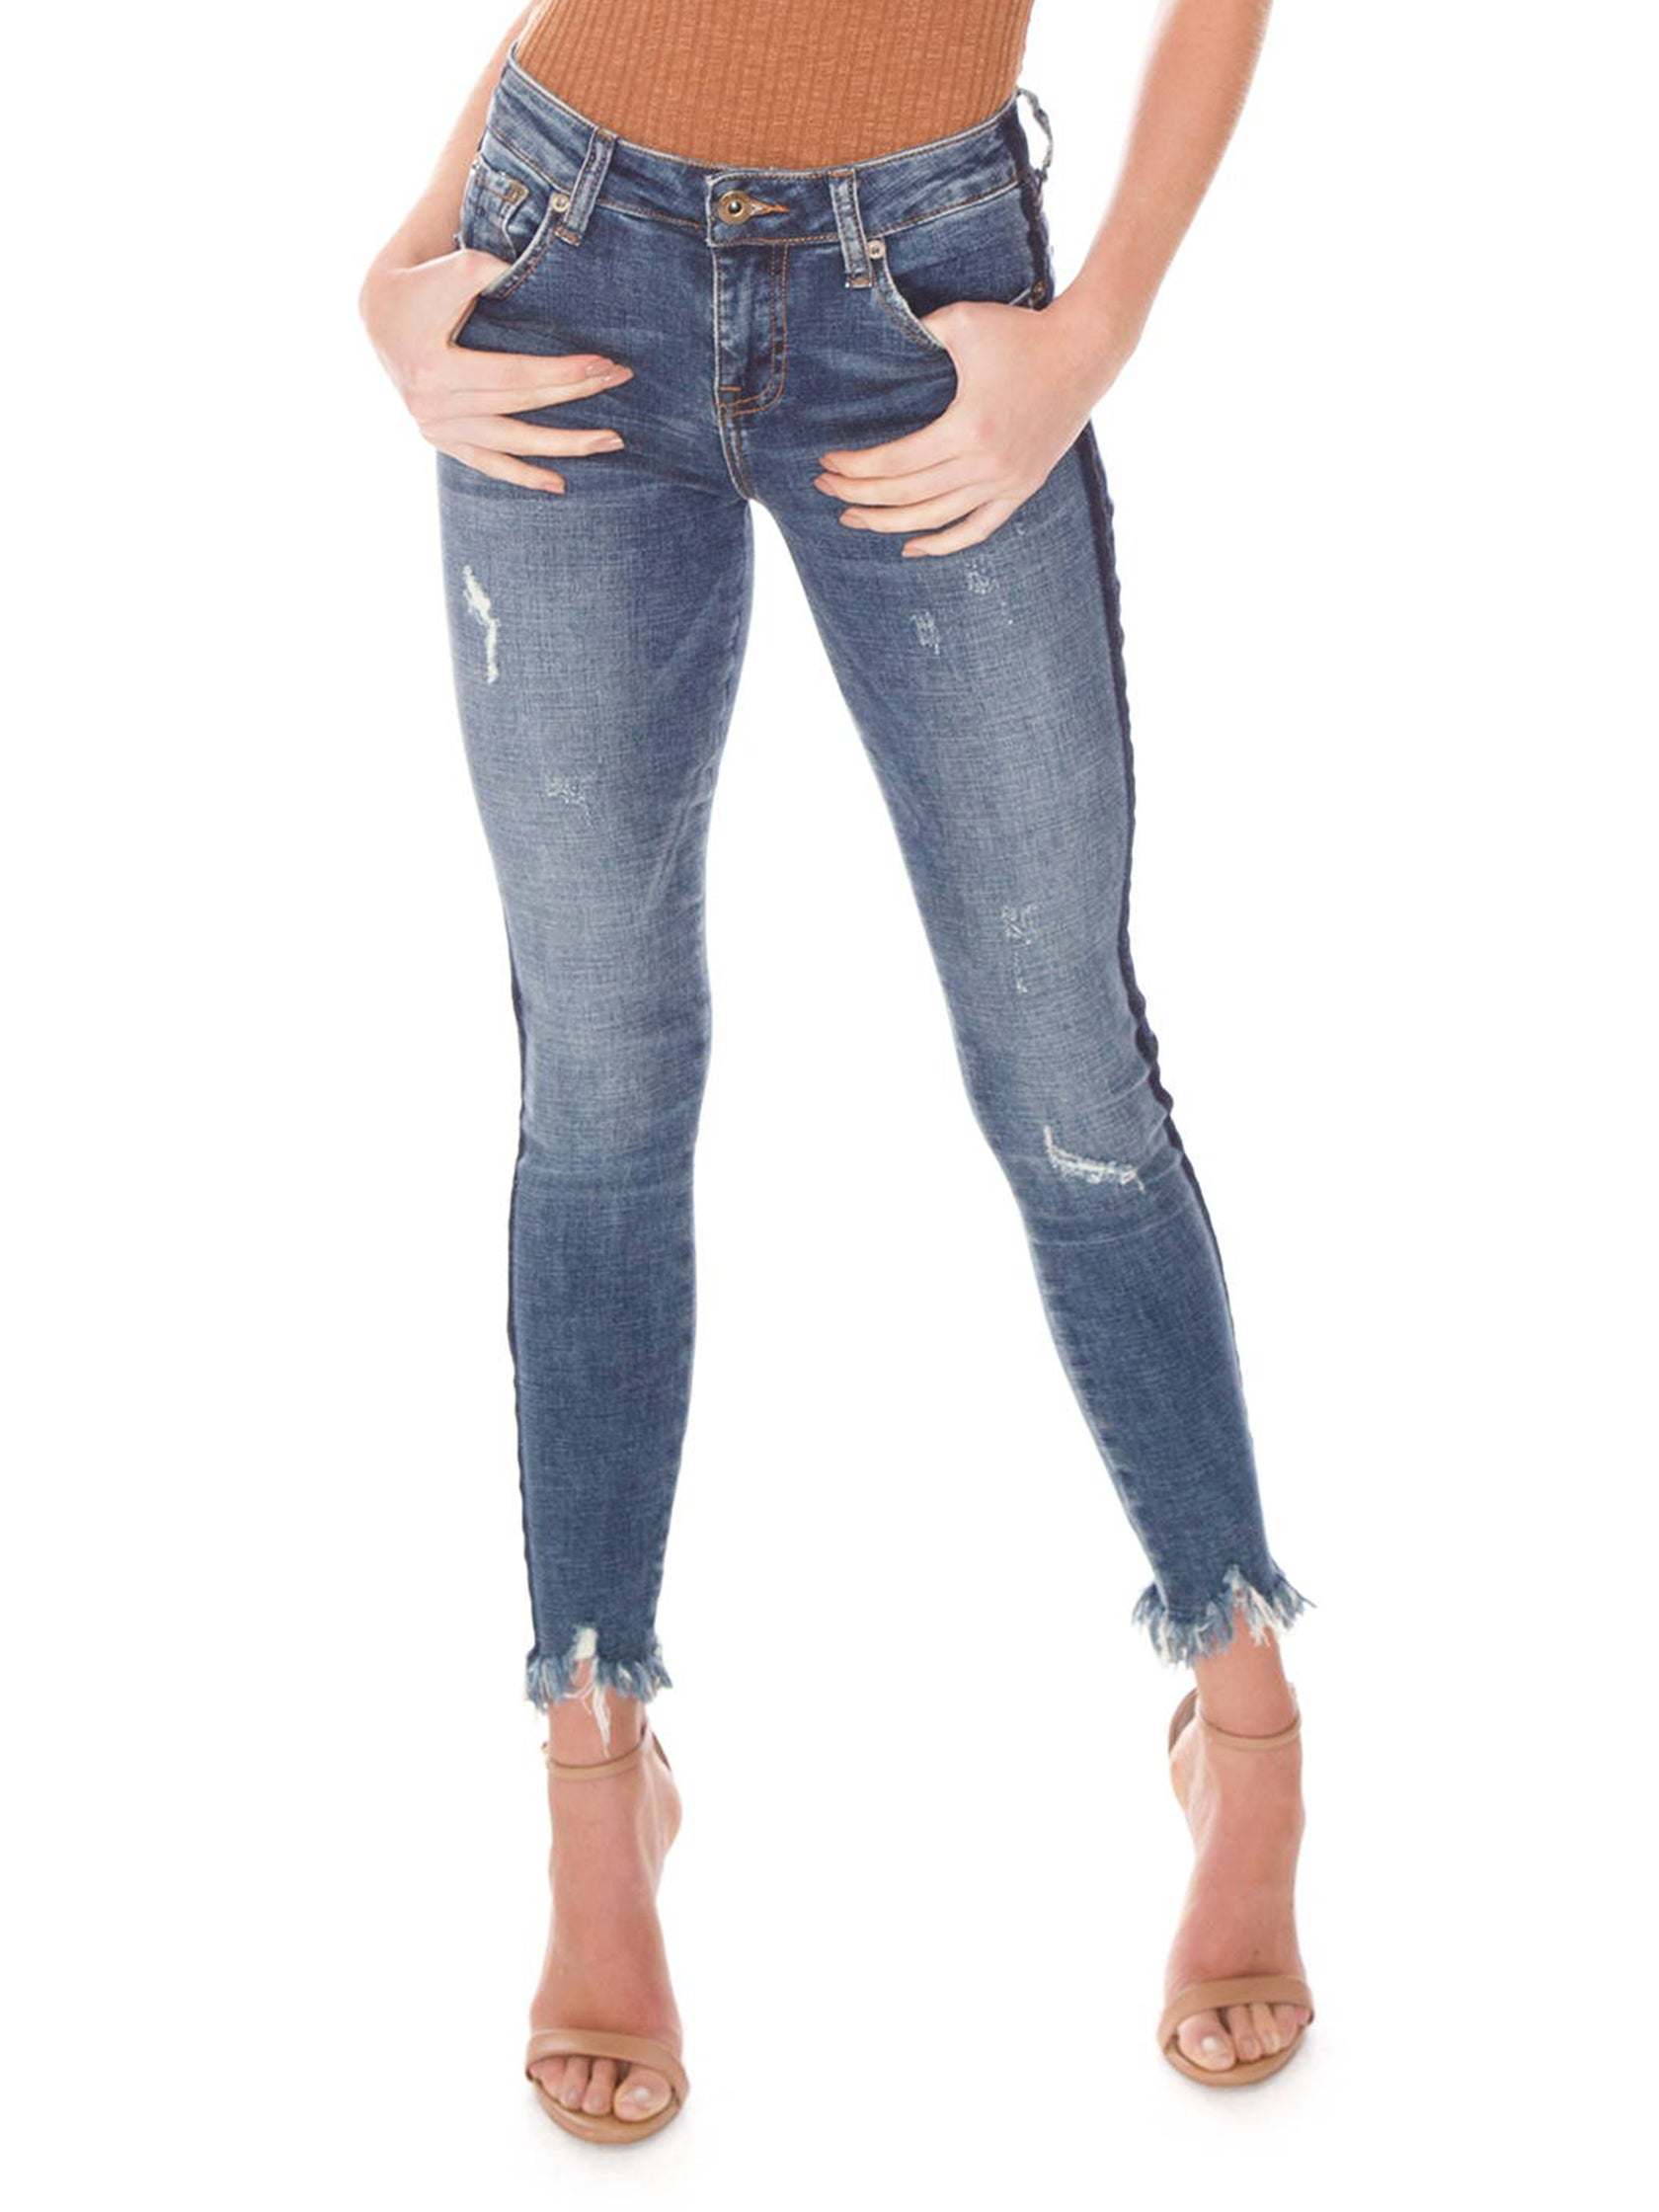 Women wearing a denim rental from PISTOLA called Audrey Mid Rise Skinny Jeans - Situational